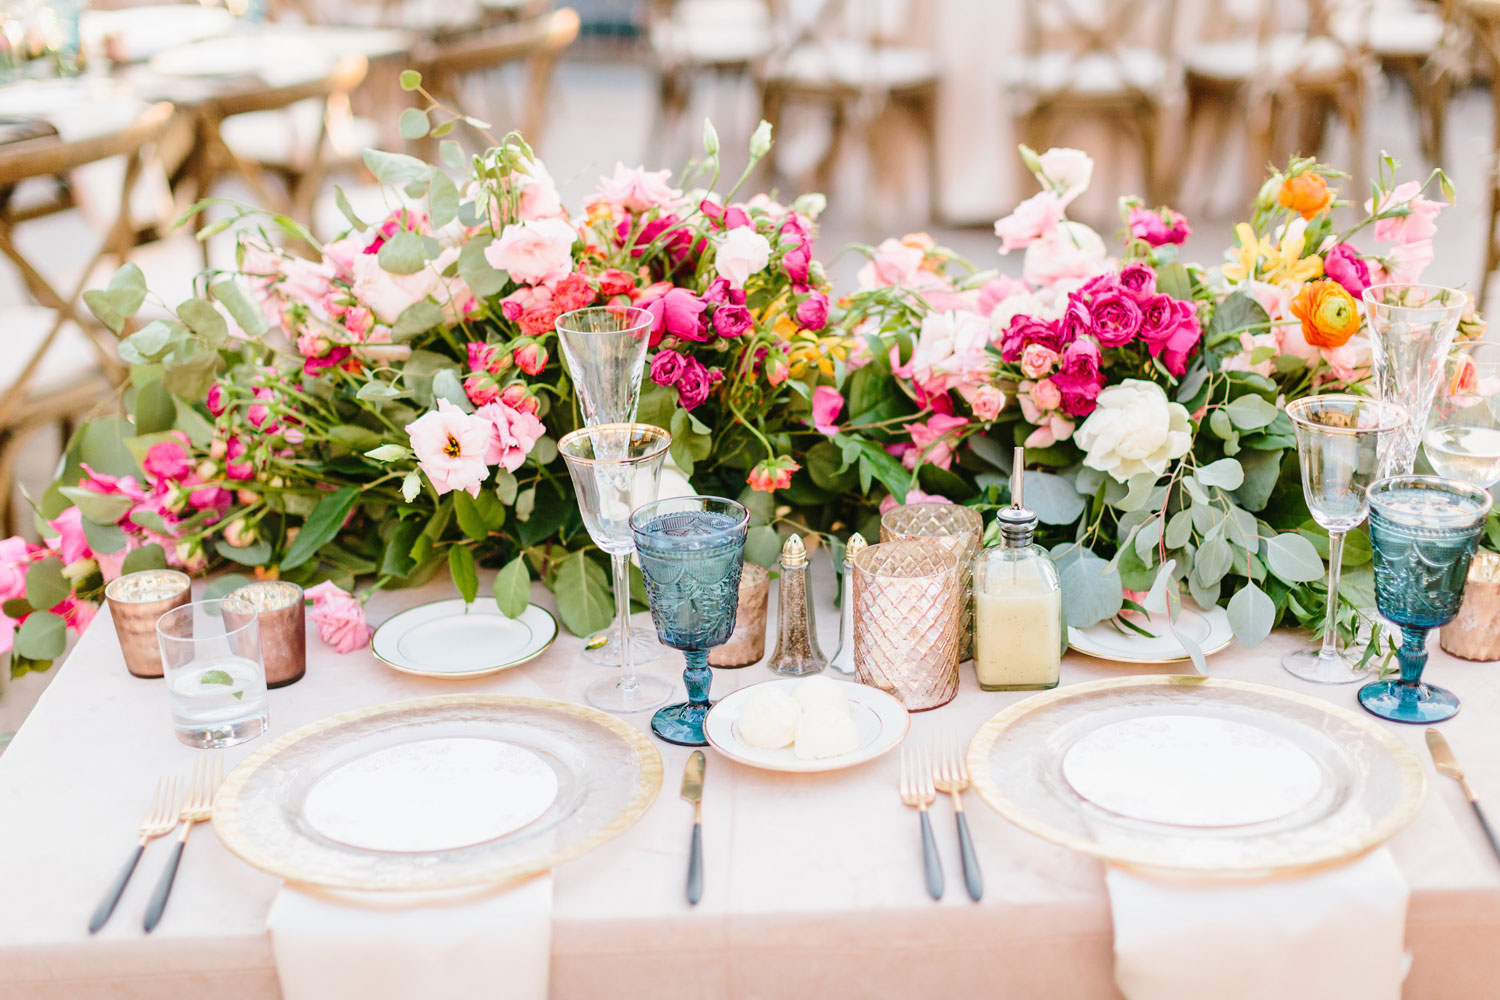 How to Add a Pop of Color to Your Wedding Table